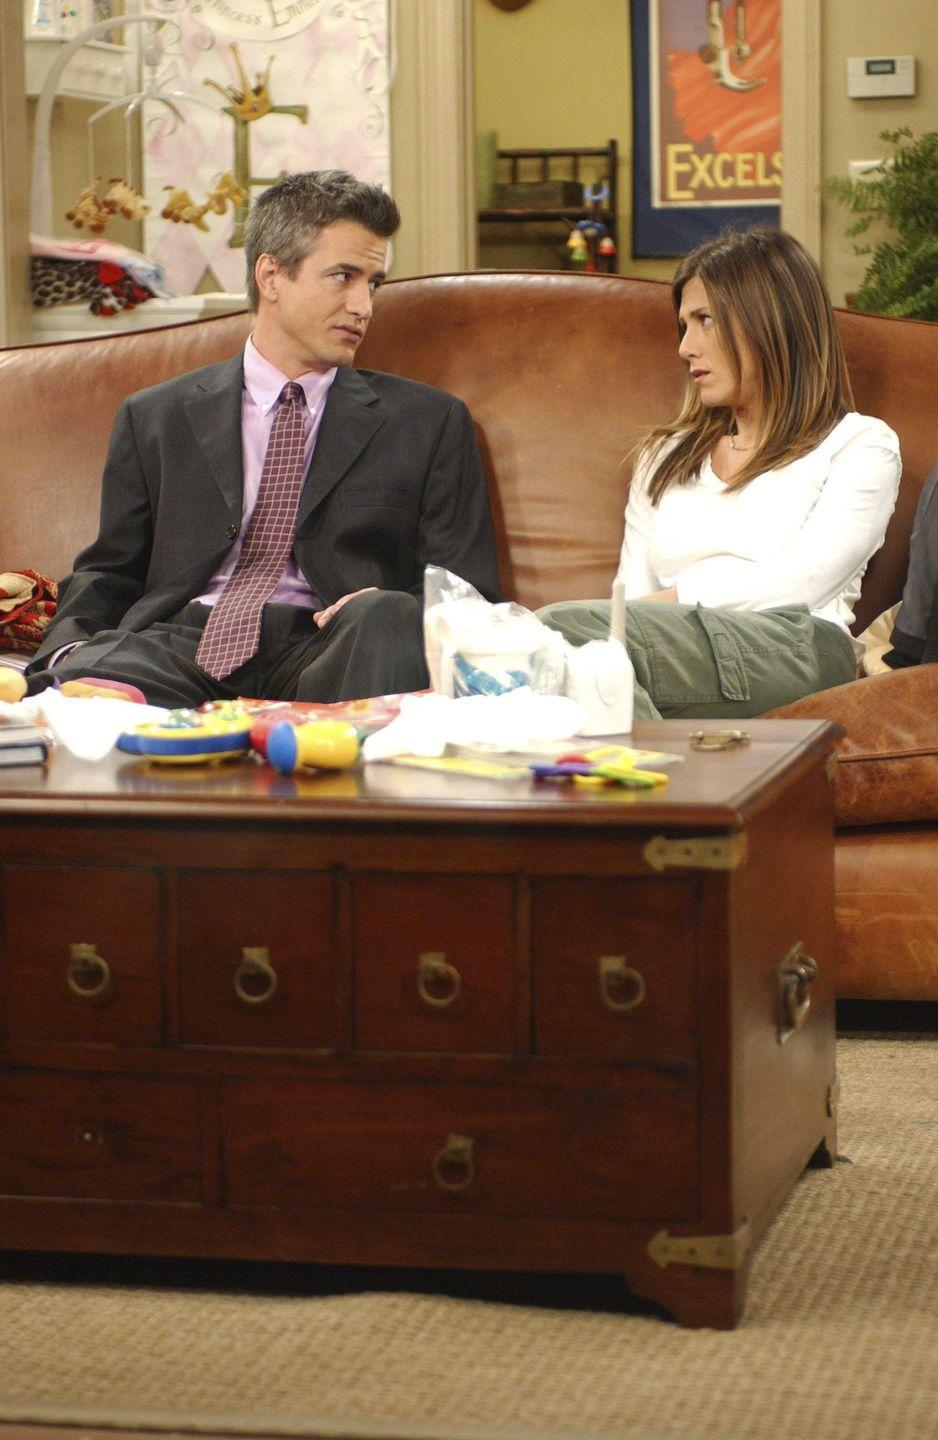 """<p>Best known for his role in <em>My Best Friend's Wedding</em>, Dermot Mulroney played Rachel's coworker-turned-love-interest for three episodes in season 9. The star recently shared how he started getting recognized by younger fans after Netflix started streaming the show: """"I was suddenly being shouted at on the street, 'Hey Gavin!' and I'm like, 'Who the f*** is Gavin?'"""" he told <em><a href=""""https://www.youtube.com/watch?v=XGN7vJ6rZ_w"""" rel=""""nofollow noopener"""" target=""""_blank"""" data-ylk=""""slk:Wired"""" class=""""link rapid-noclick-resp"""">Wired</a>.</em></p>"""